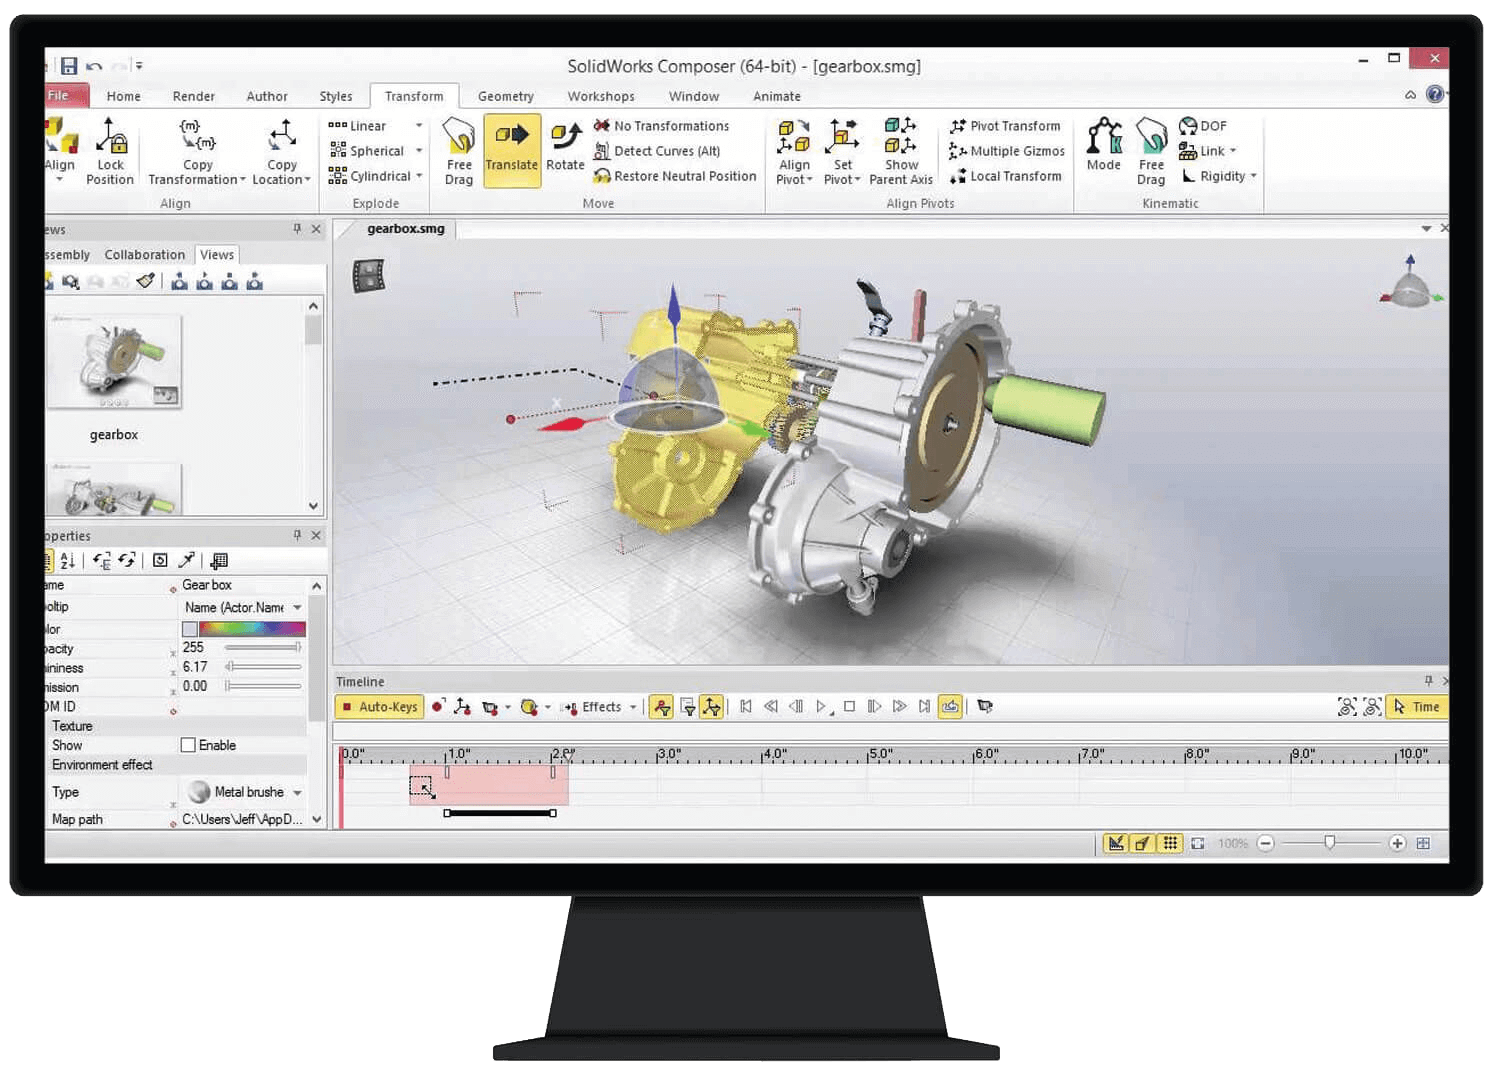 solidworks composer professional